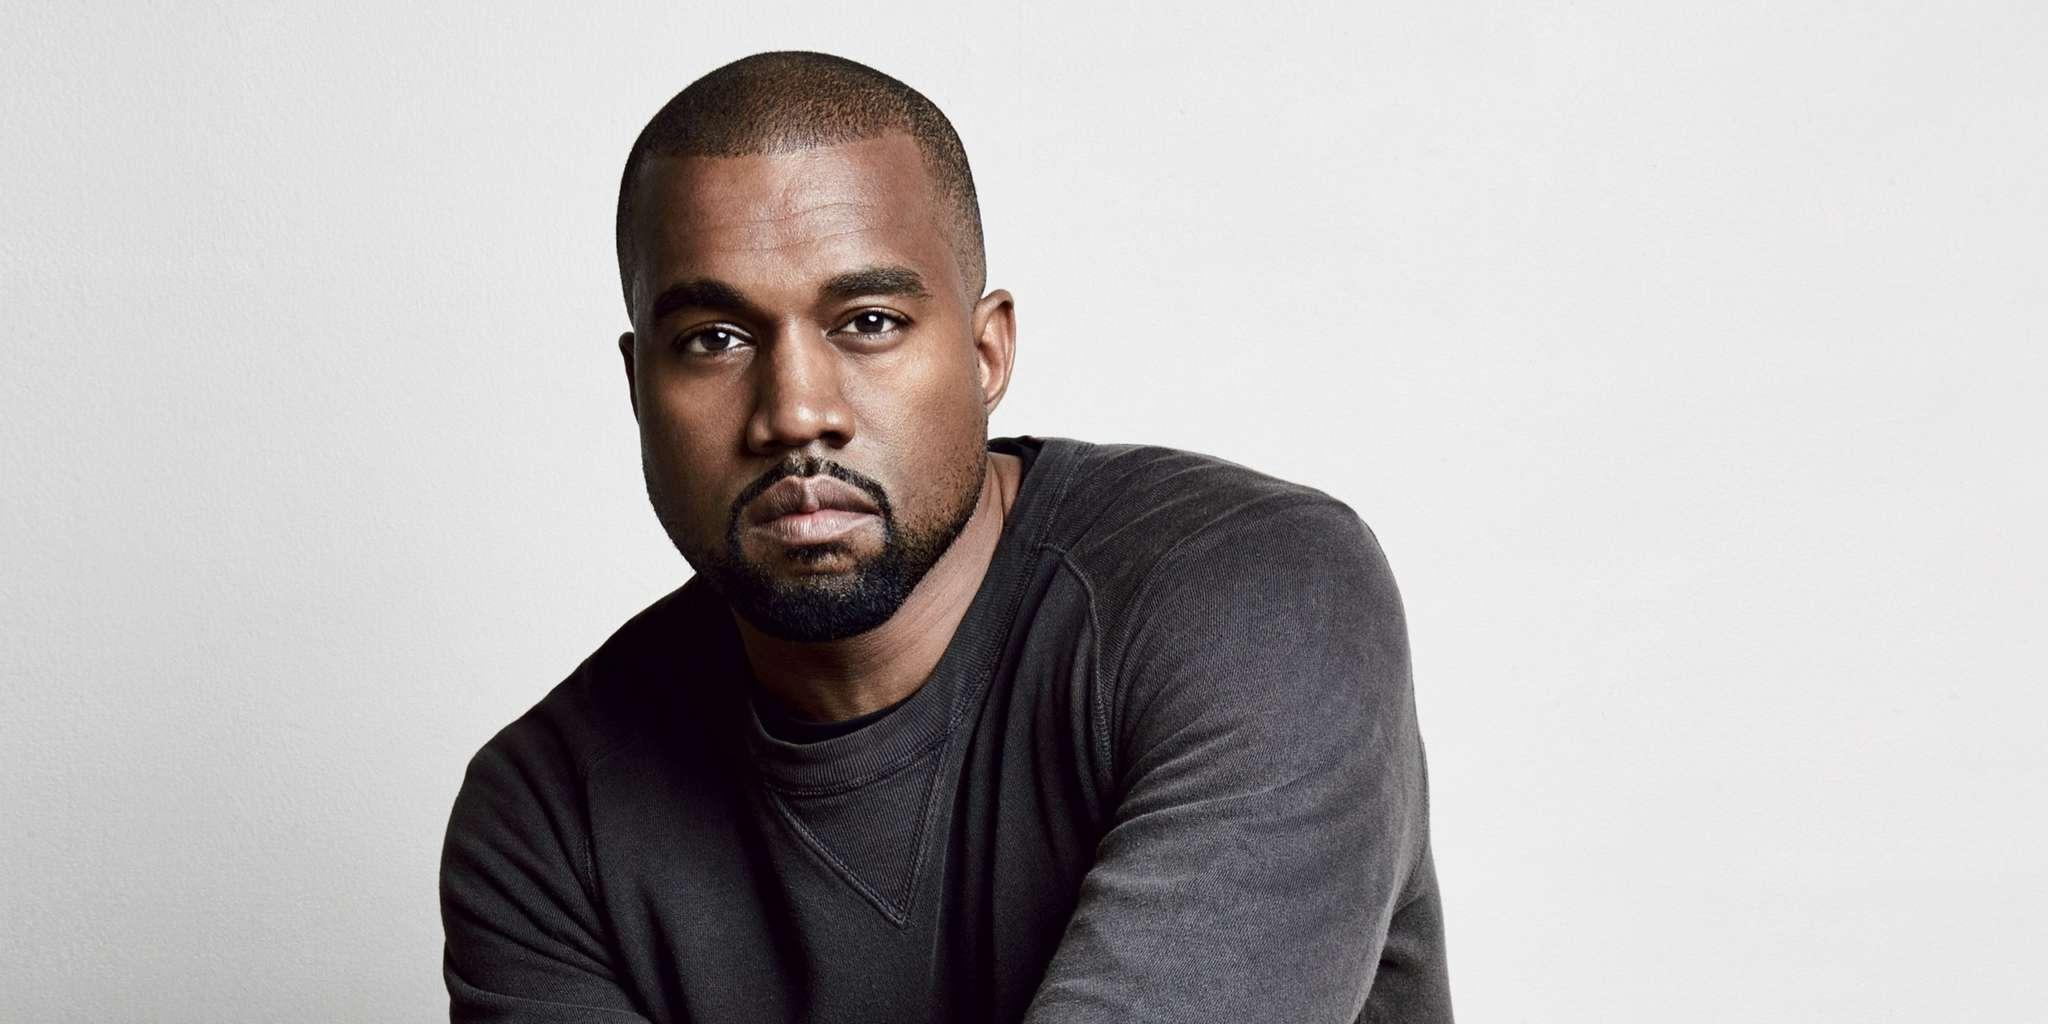 KUWK: Kanye West Plans To Expand Into The Beauty Industry - Here's How Kim And Kylie Feel About Him Becoming Their Competitor!